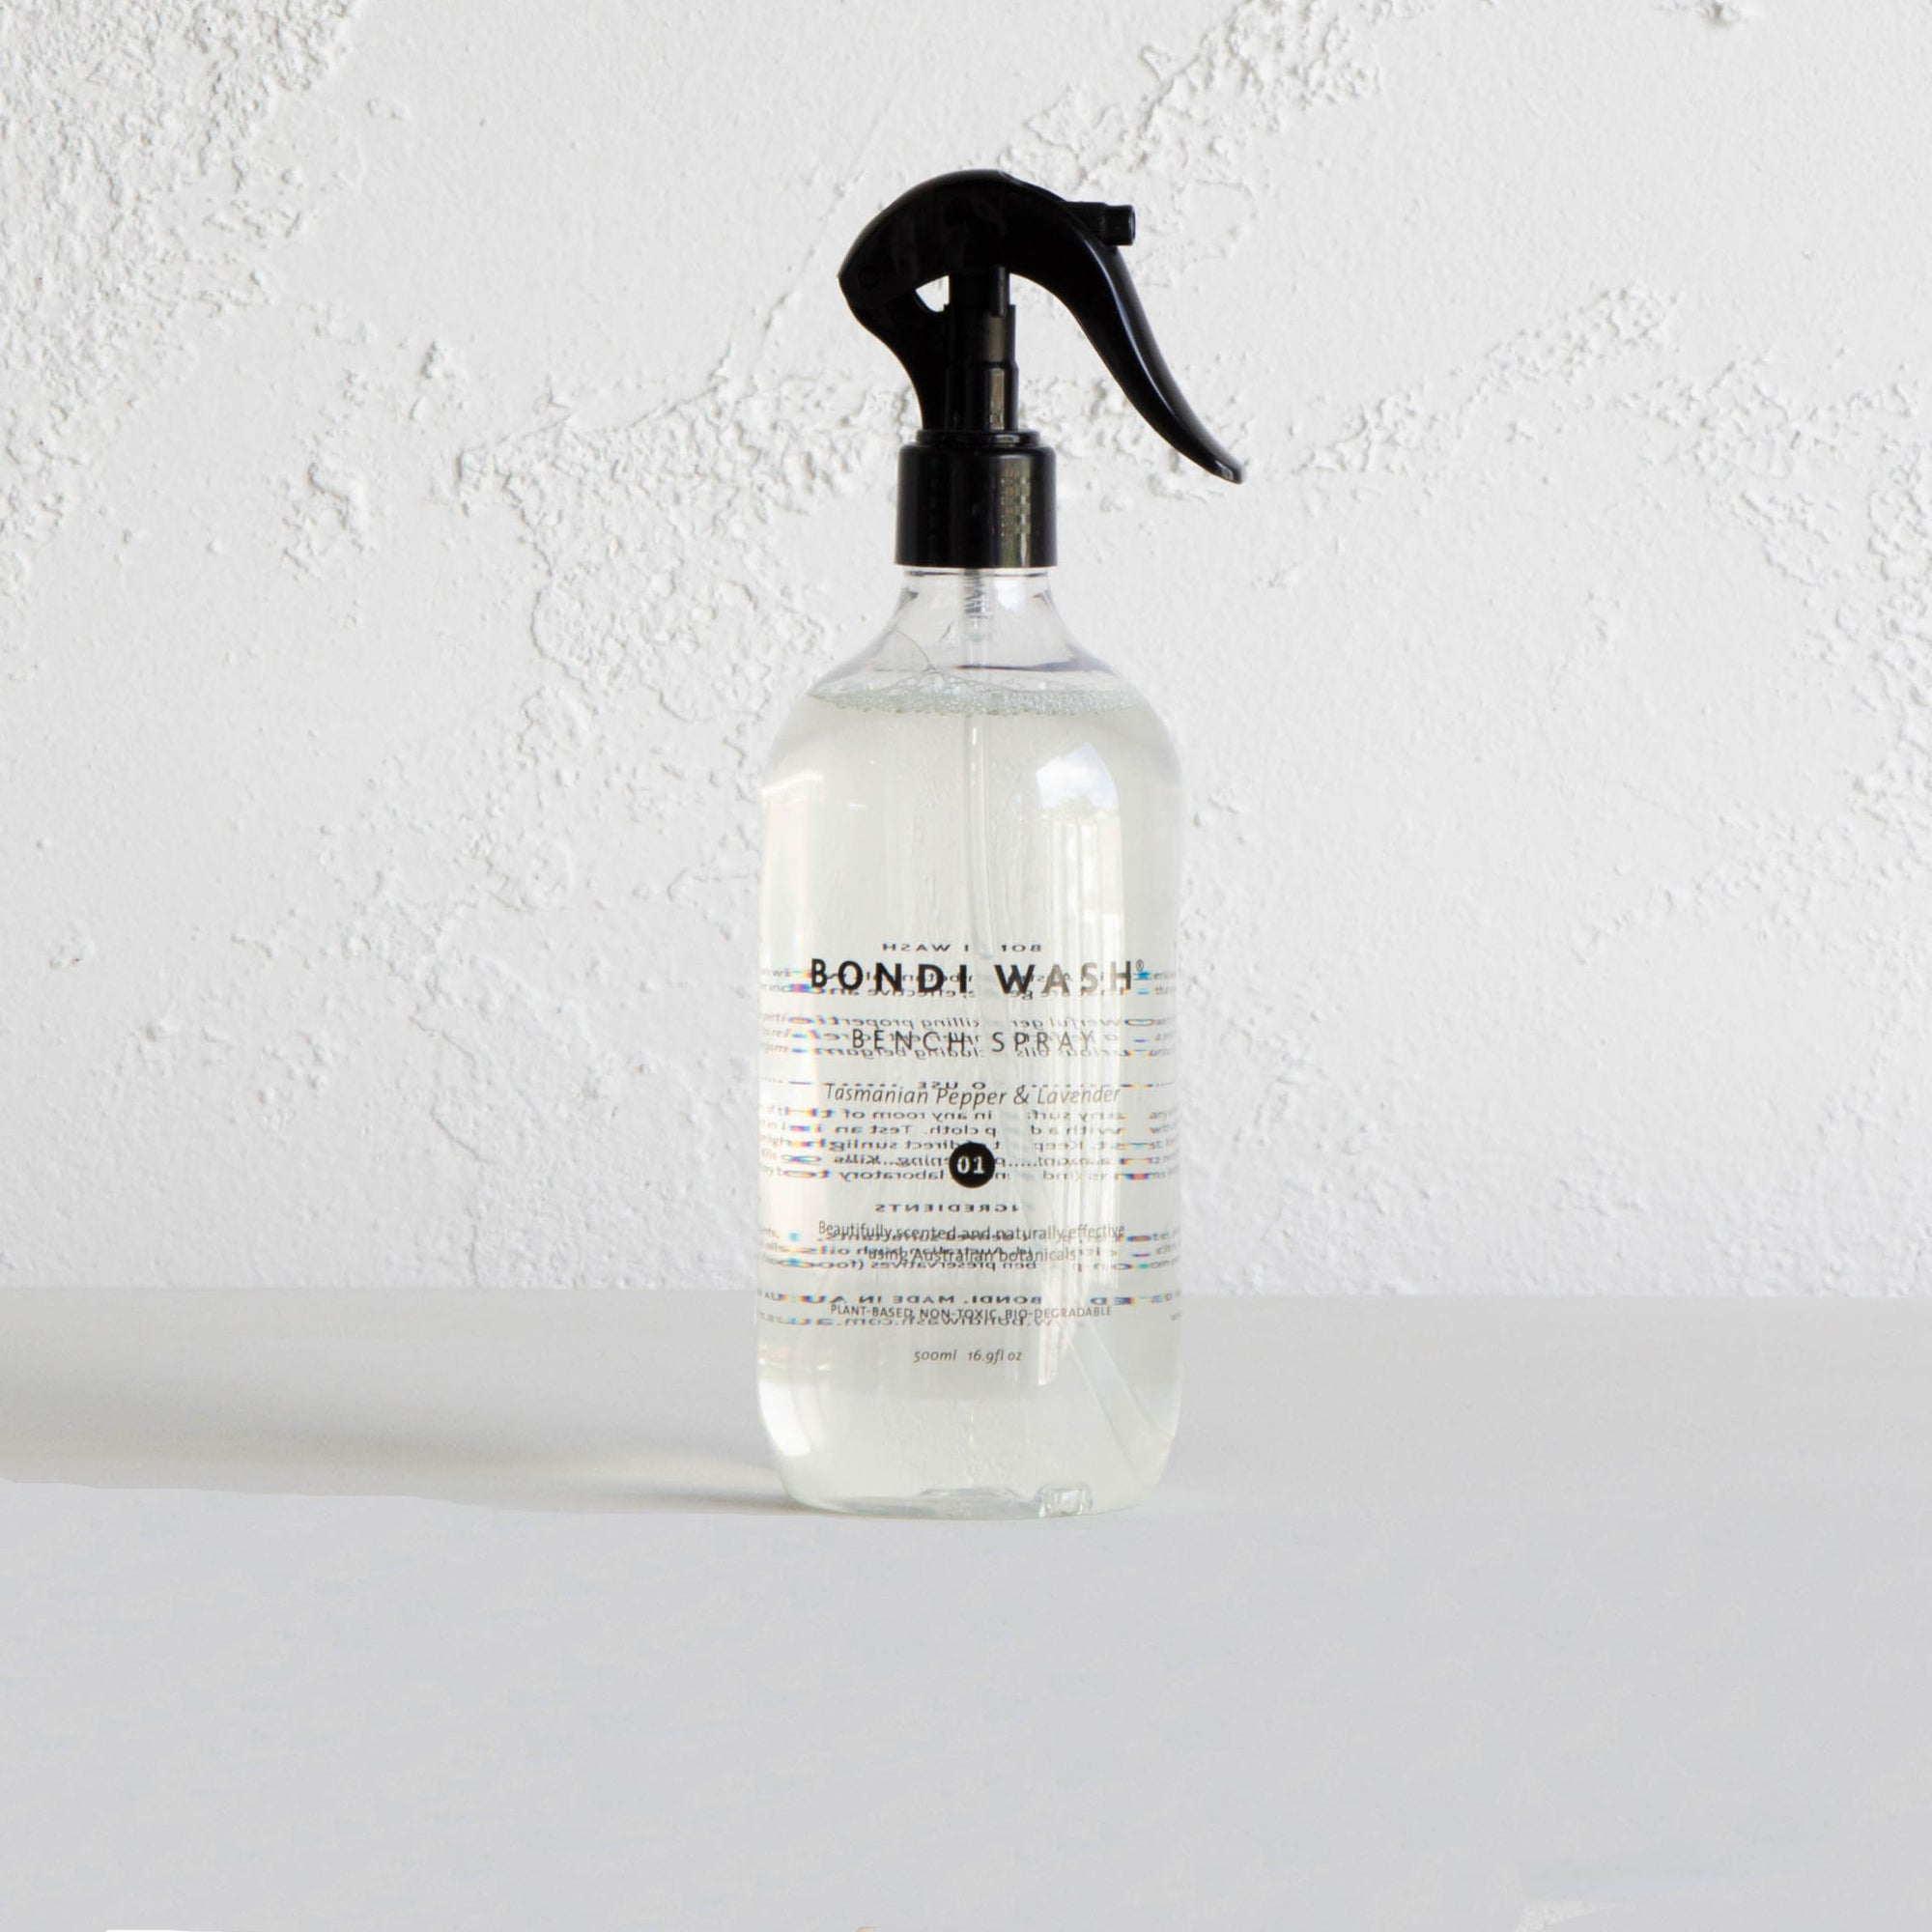 BONDI WASH BENCH SPRAY  |  TASMANIAN PEPPER & LAVENDER